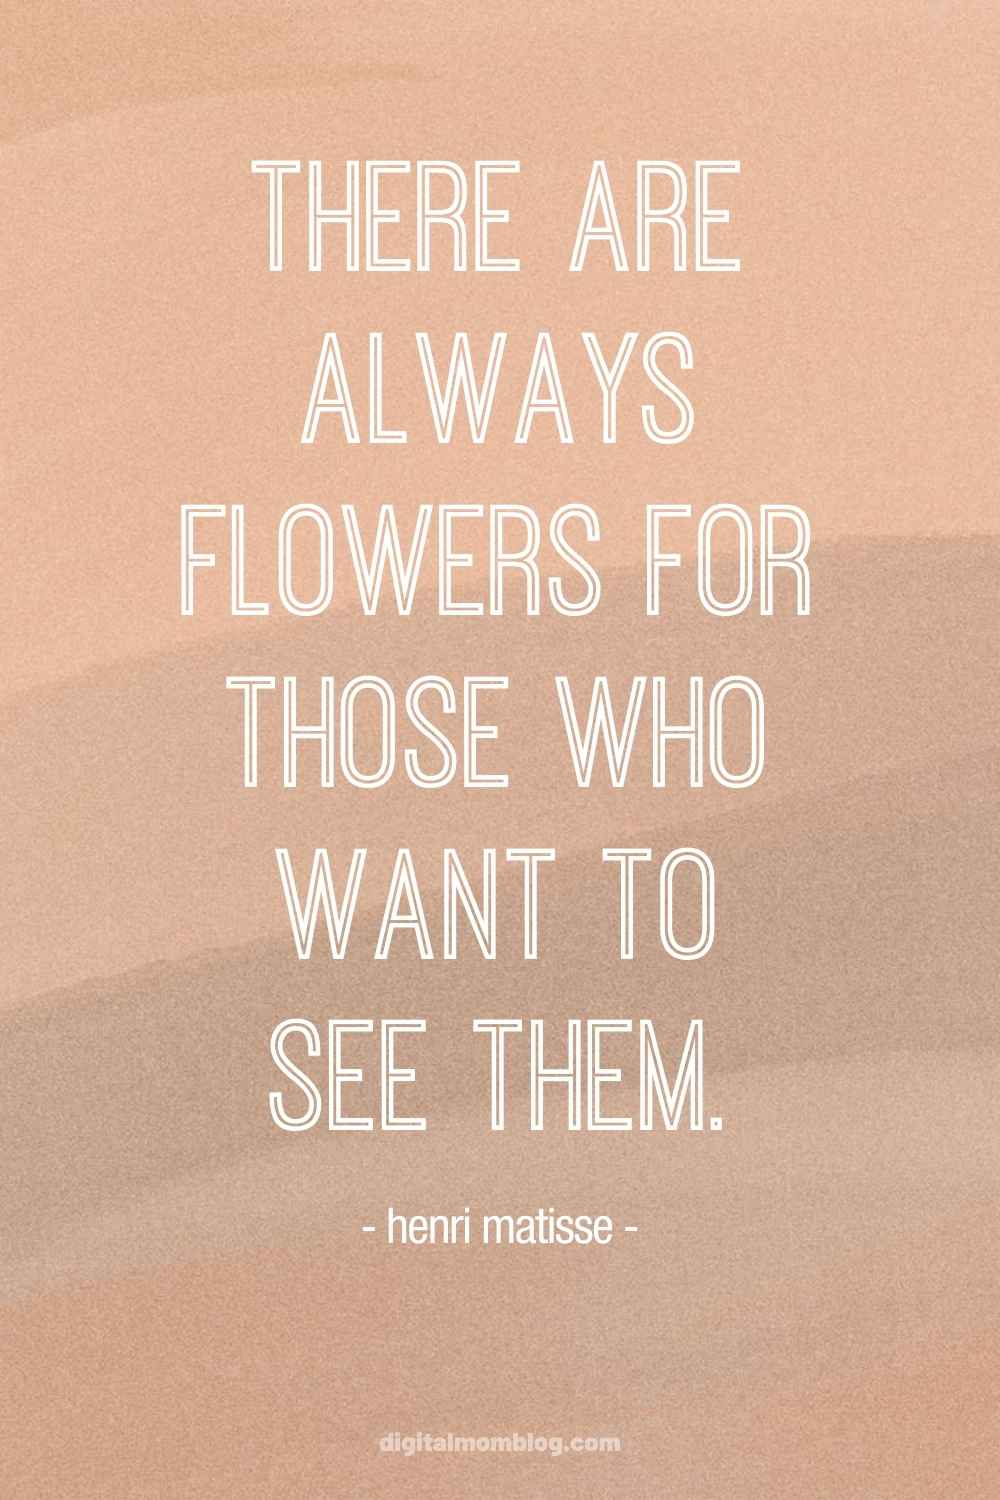 there are always flowers for those who wish to see them quote perspective viewpoint